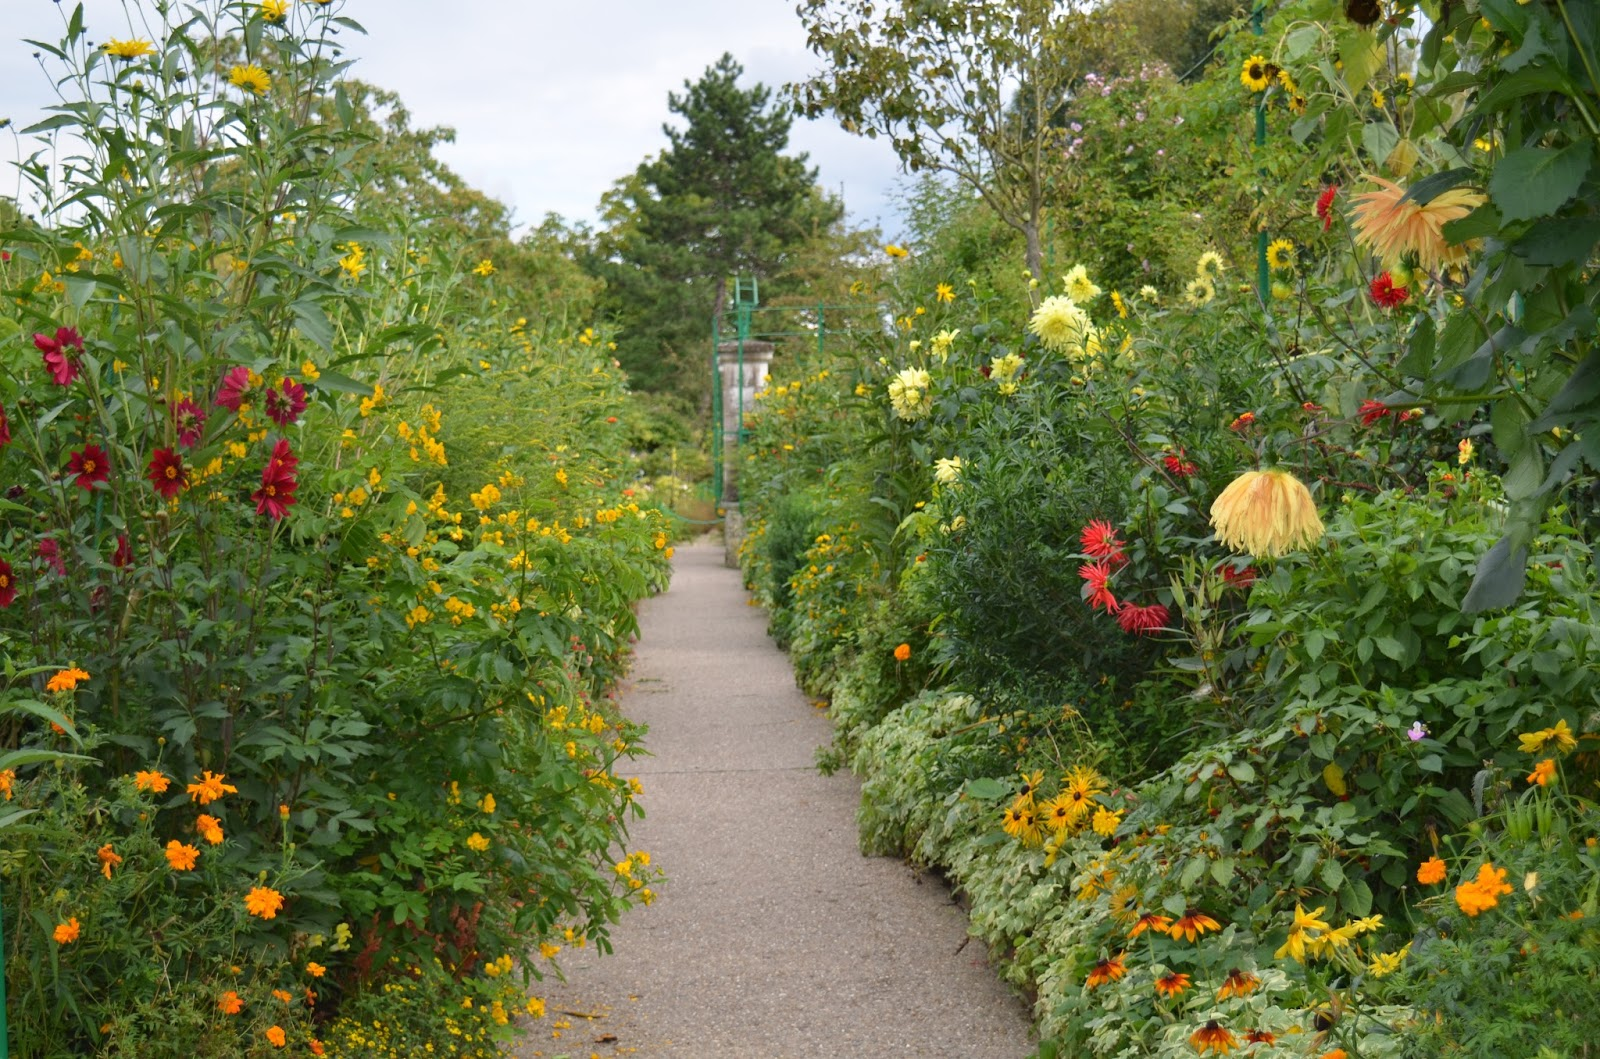 Beautiful flower garden path - Every Path Contains A New Treasure Of Plants And Color Combinations Monet Has Over 200 000 Annuals Biennials And Perennials On Display In His Garden